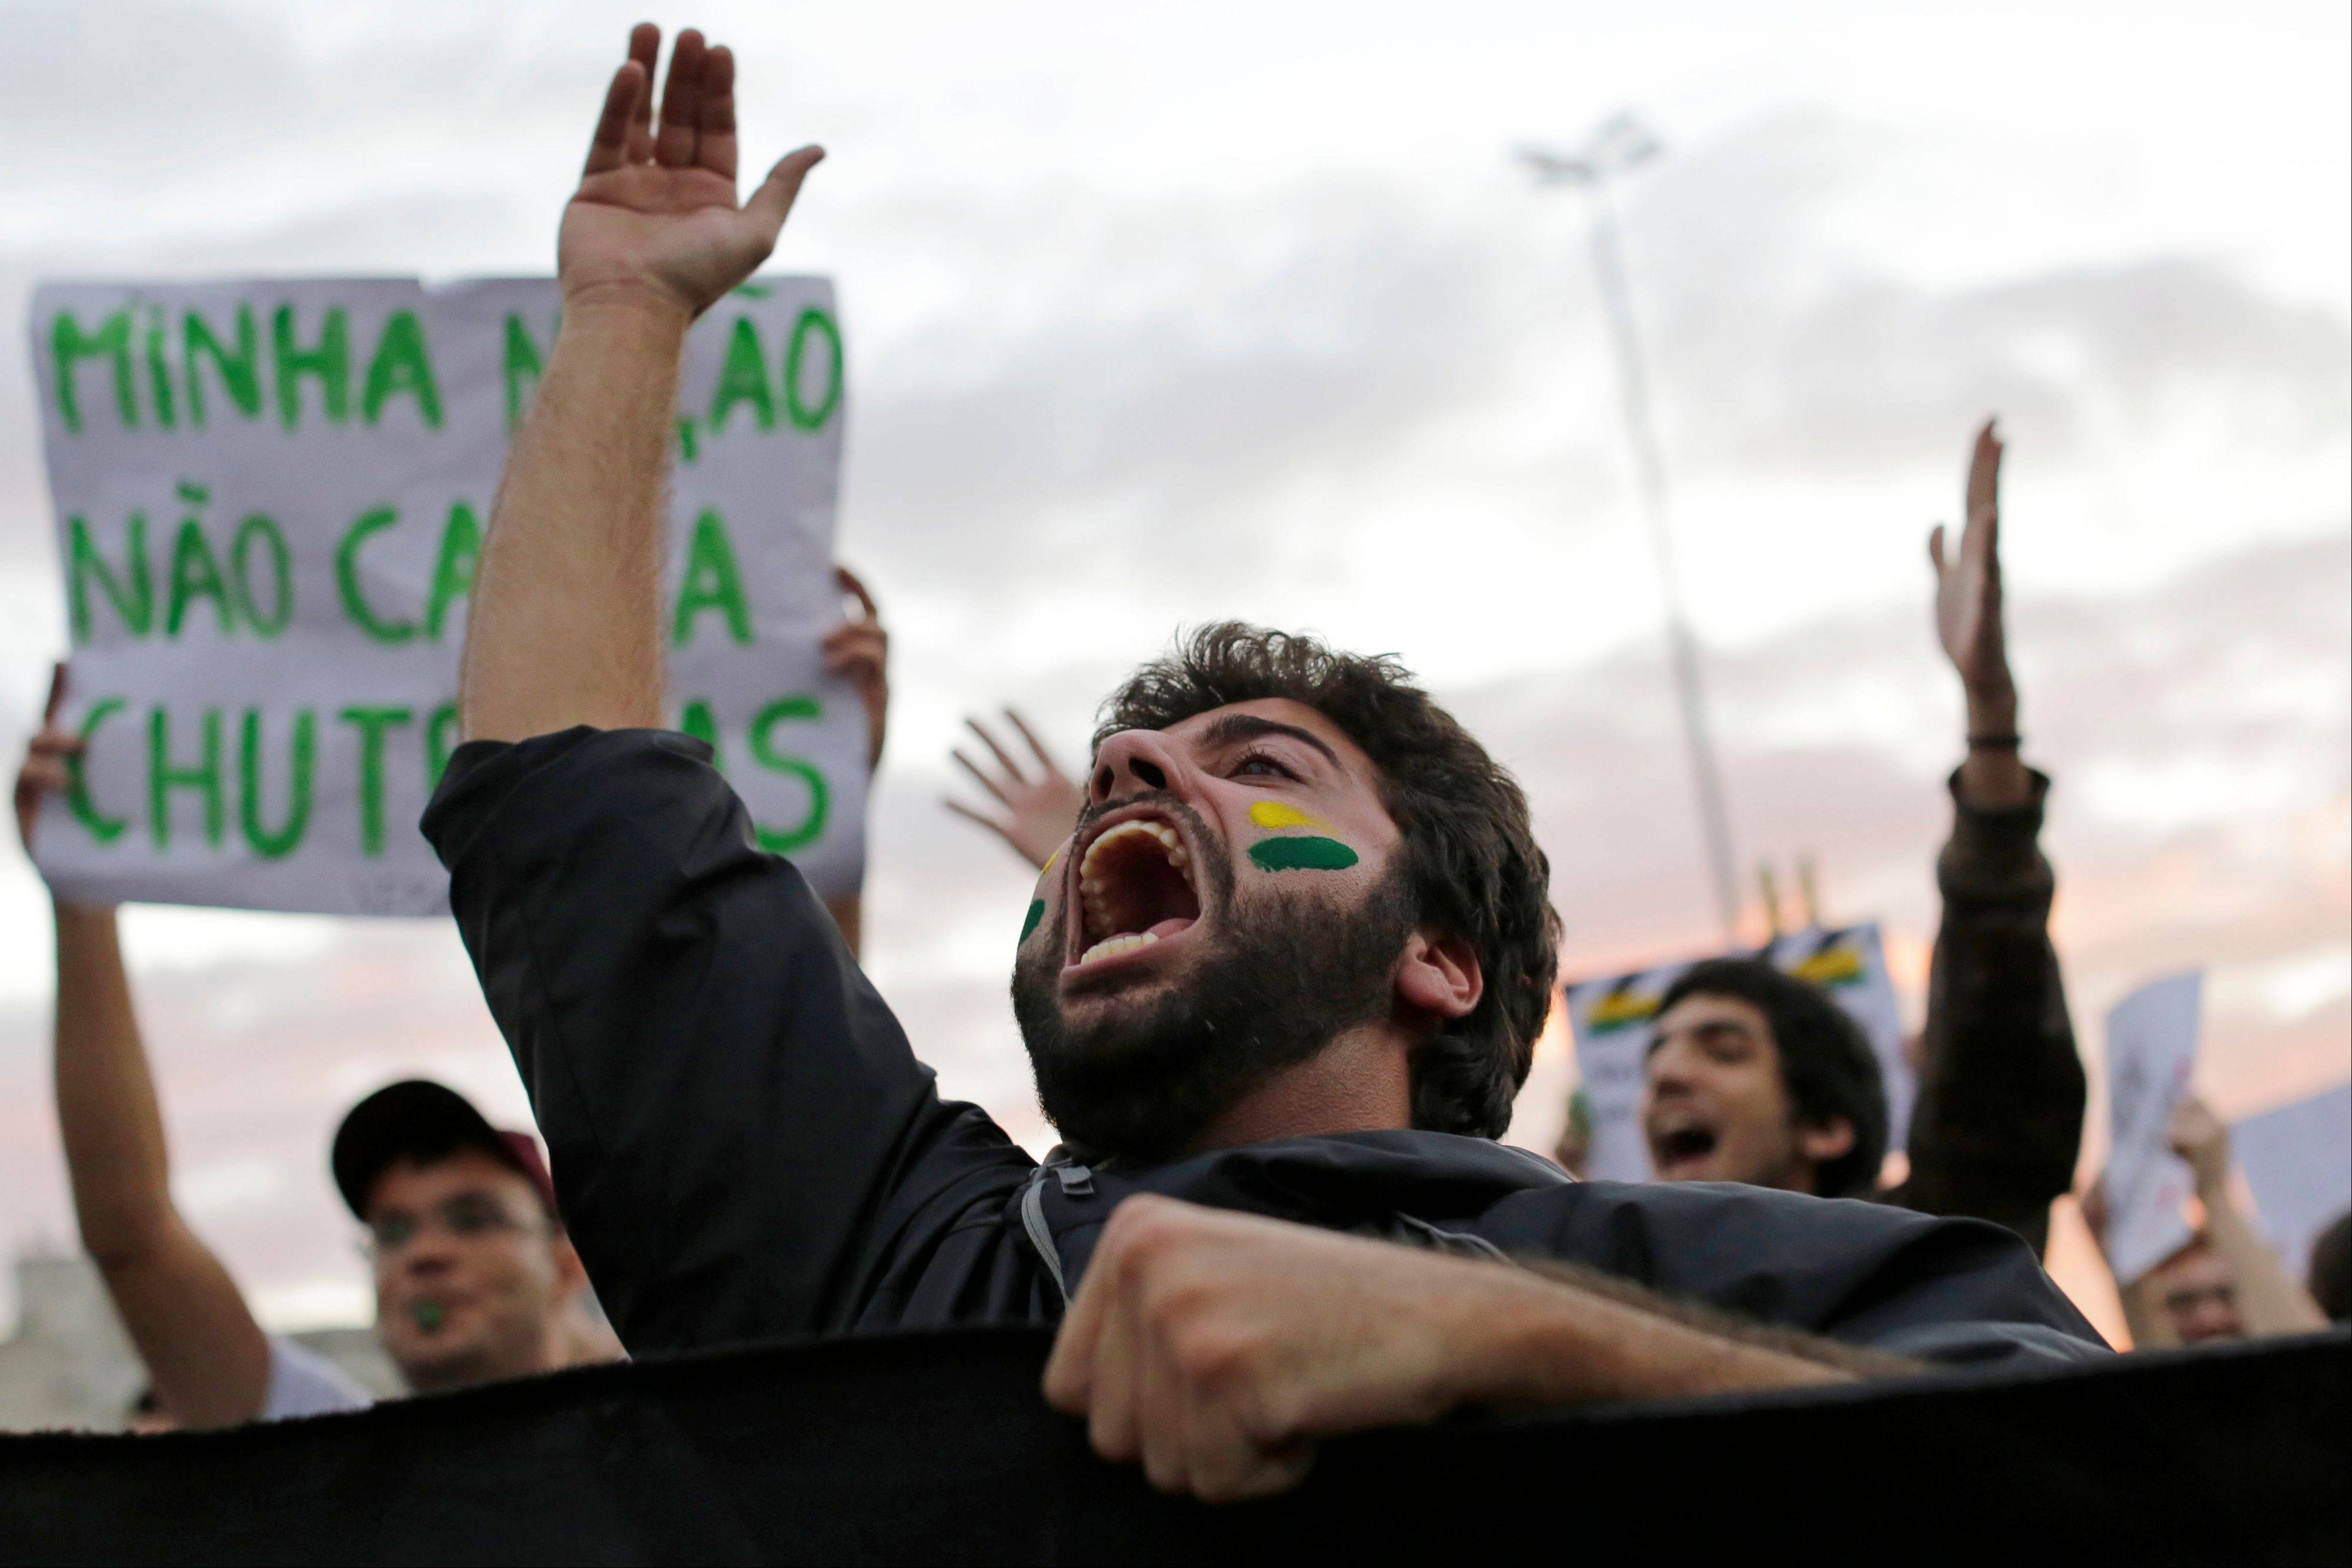 A demonstrator shouts during a protests in Sao Paulo, Brazil, Monday, June 17, 2013. Some of the biggest demonstrations since the end of Brazil's 1964-85 dictatorship have broken out across this continent-sized country, uniting tens of thousands frustrated by poor transportation, health services, education and security despite a heavy tax burden.